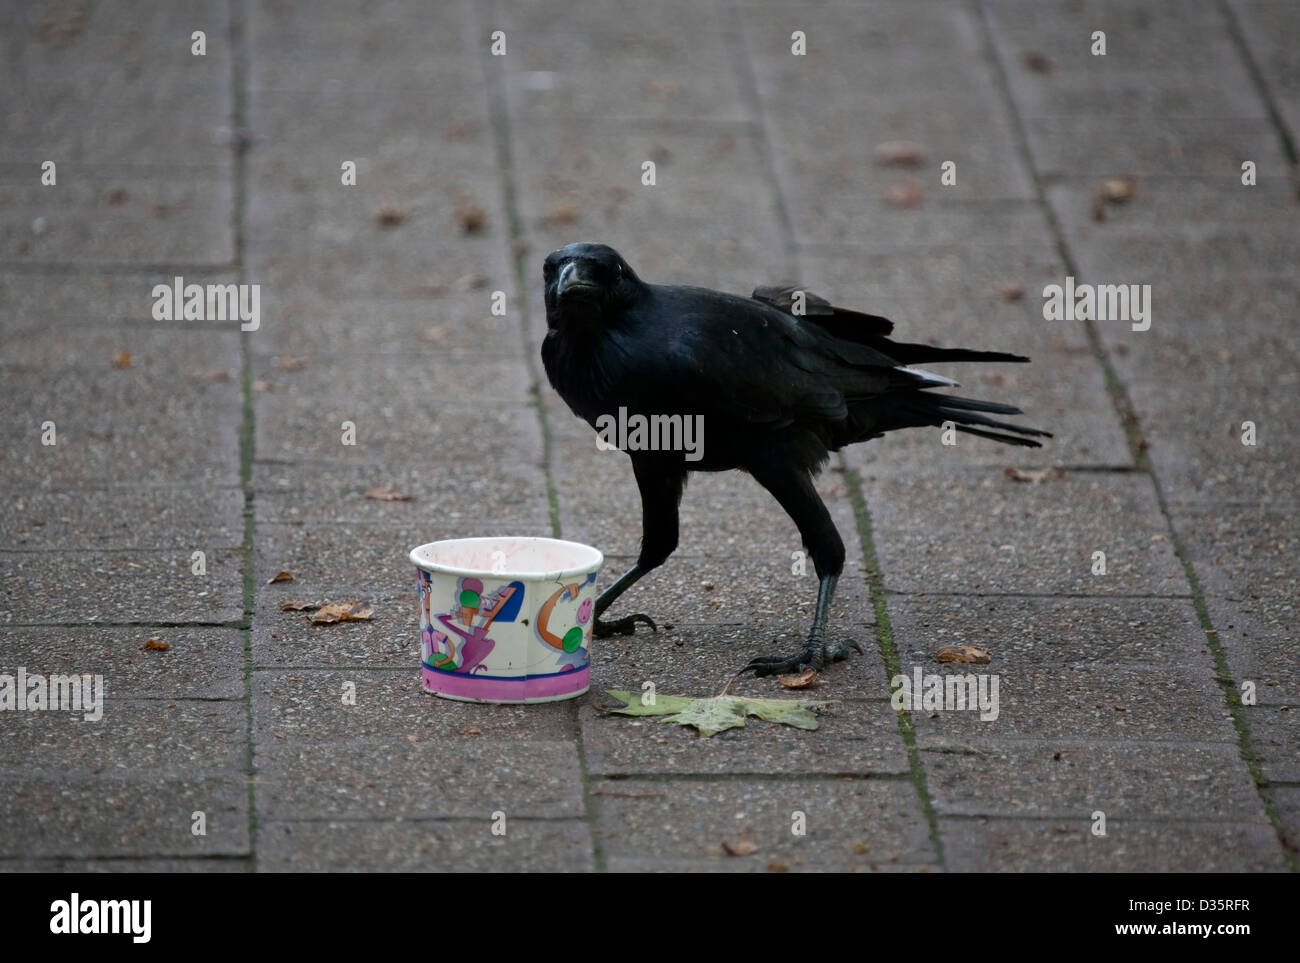 A savaging Raven working the streets of Civic Canberra Australia - Stock Image